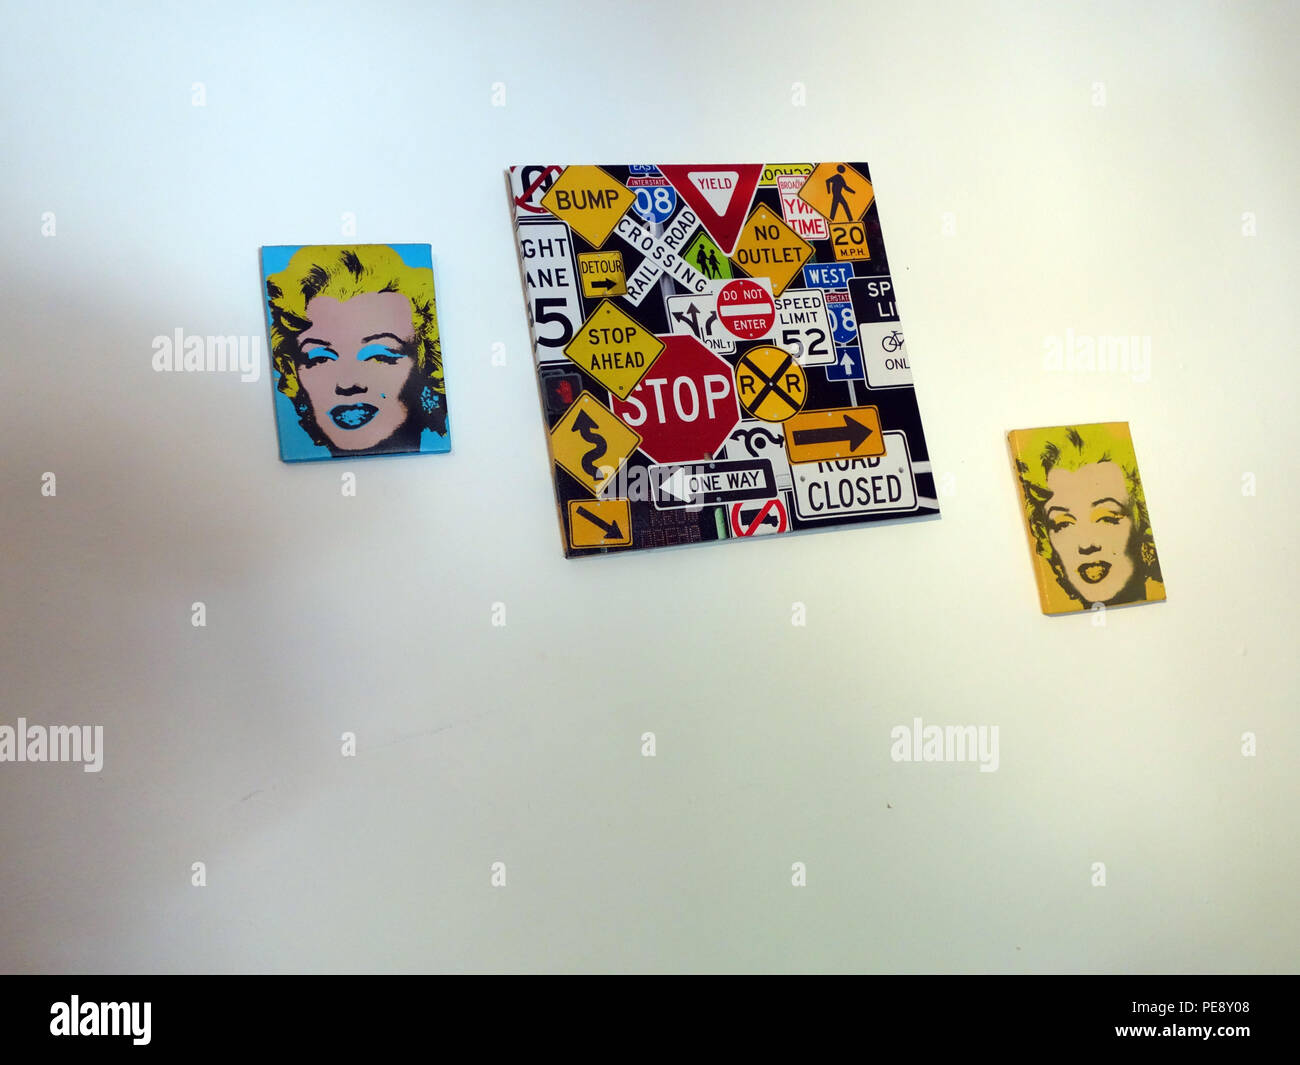 3 marilyn monroe posters on a 20 year old girls bedroom in a large French house - Stock Image